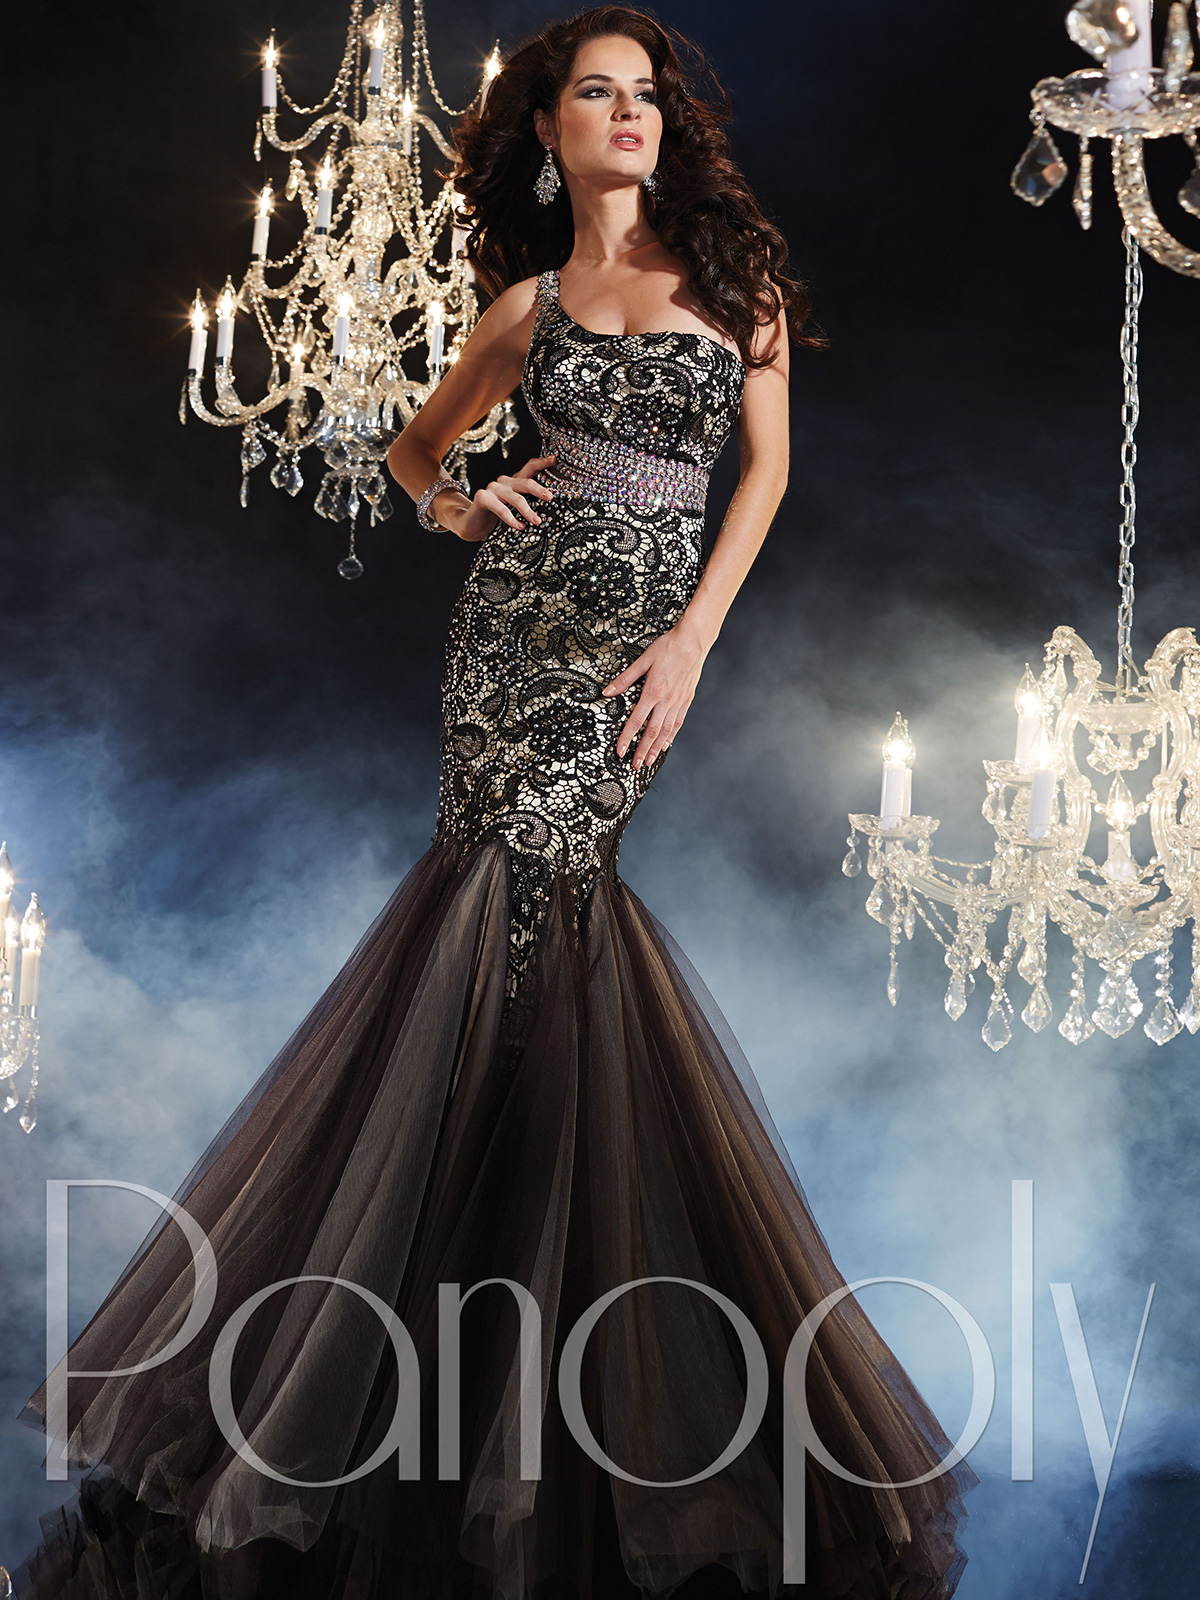 One Shoulder Mermaid Prom Dress By Panoply 44236 : DressProm.net